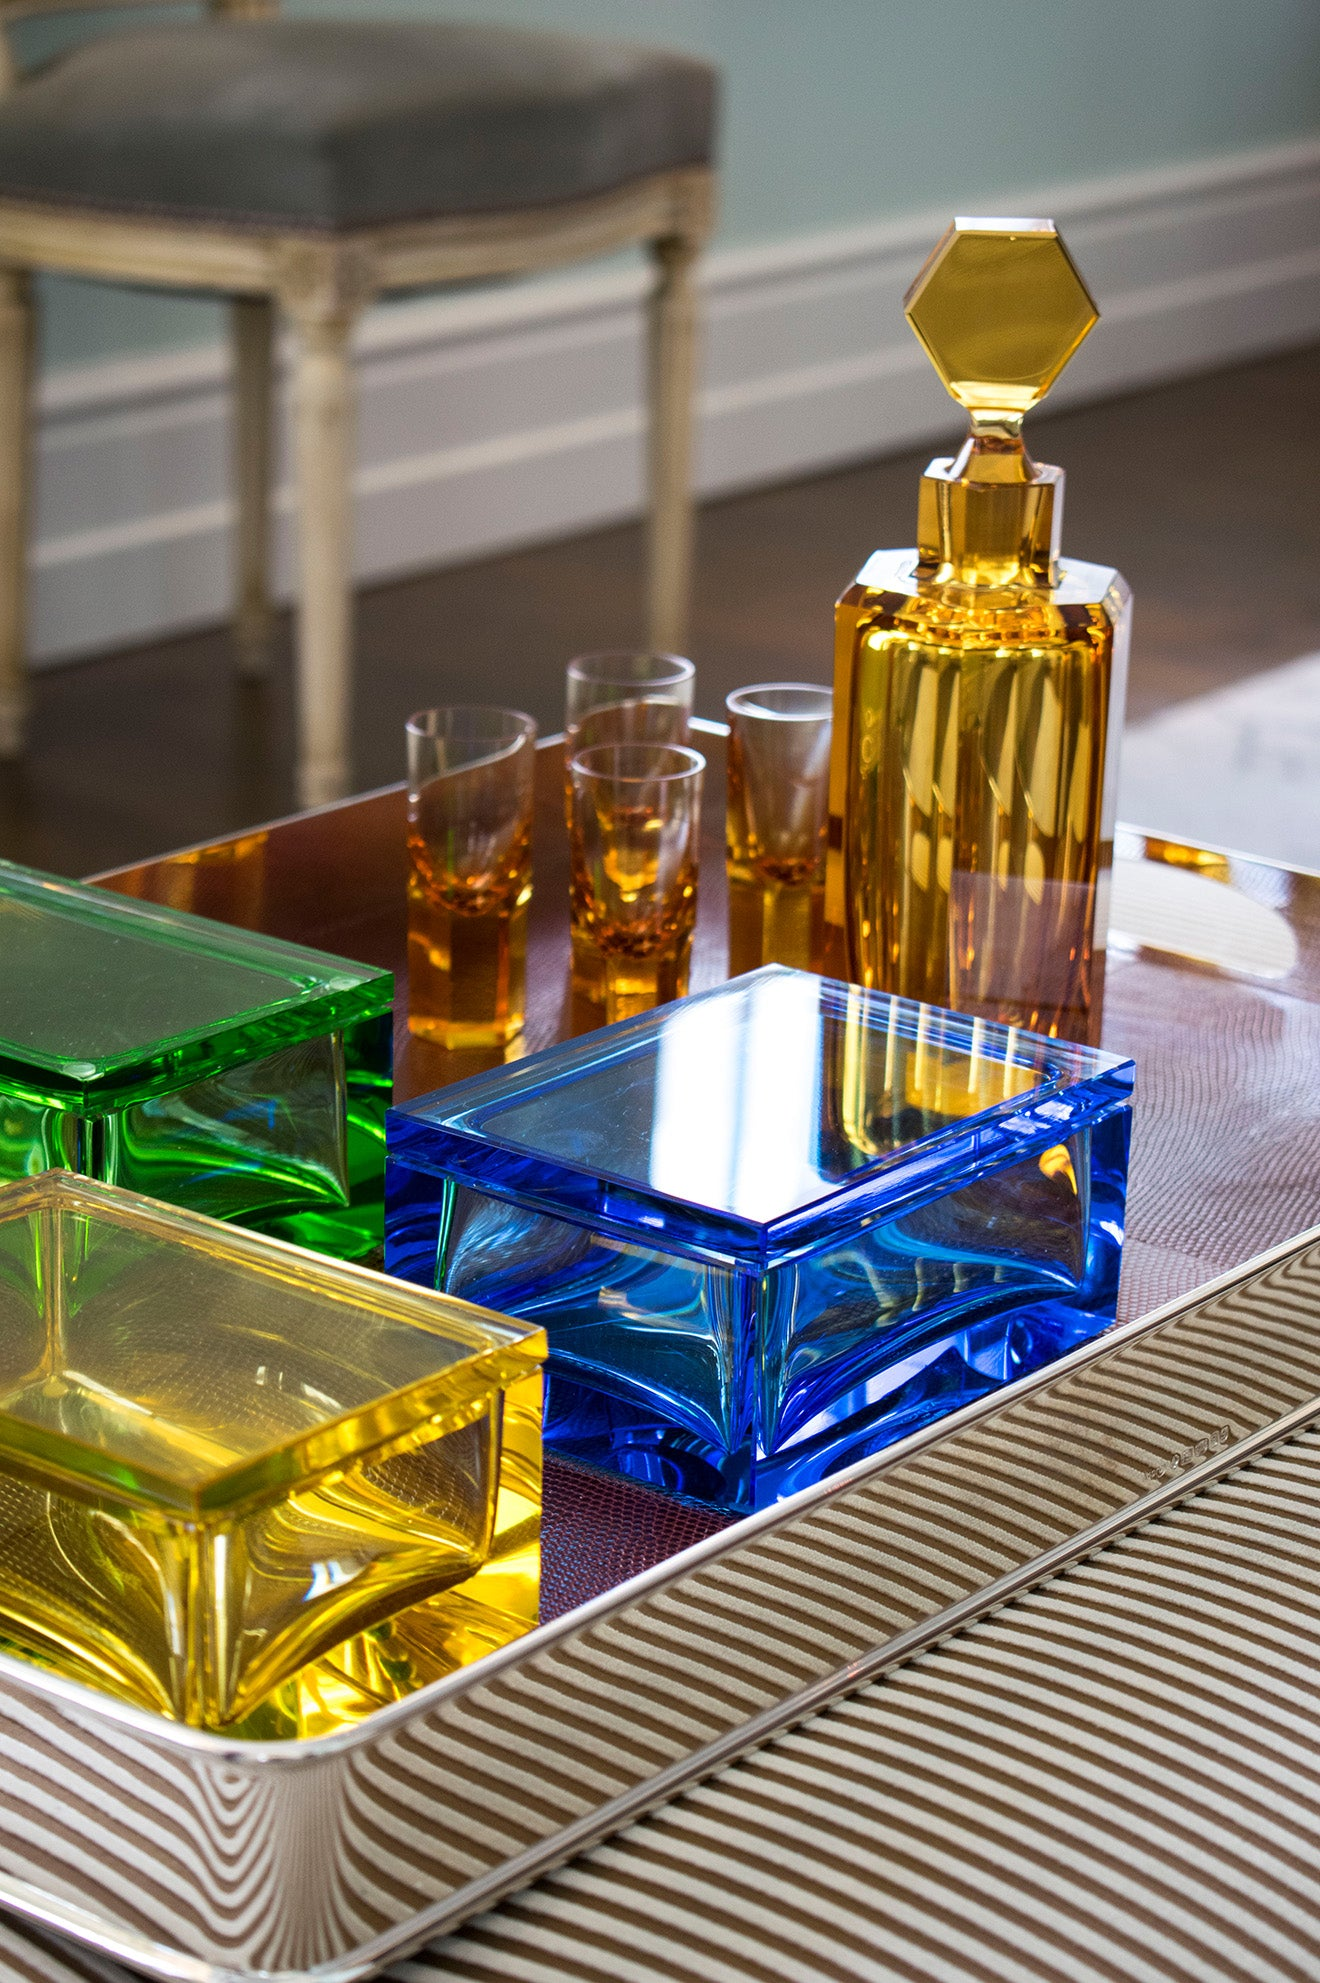 Asprey coloured crystalware decanters and glasses